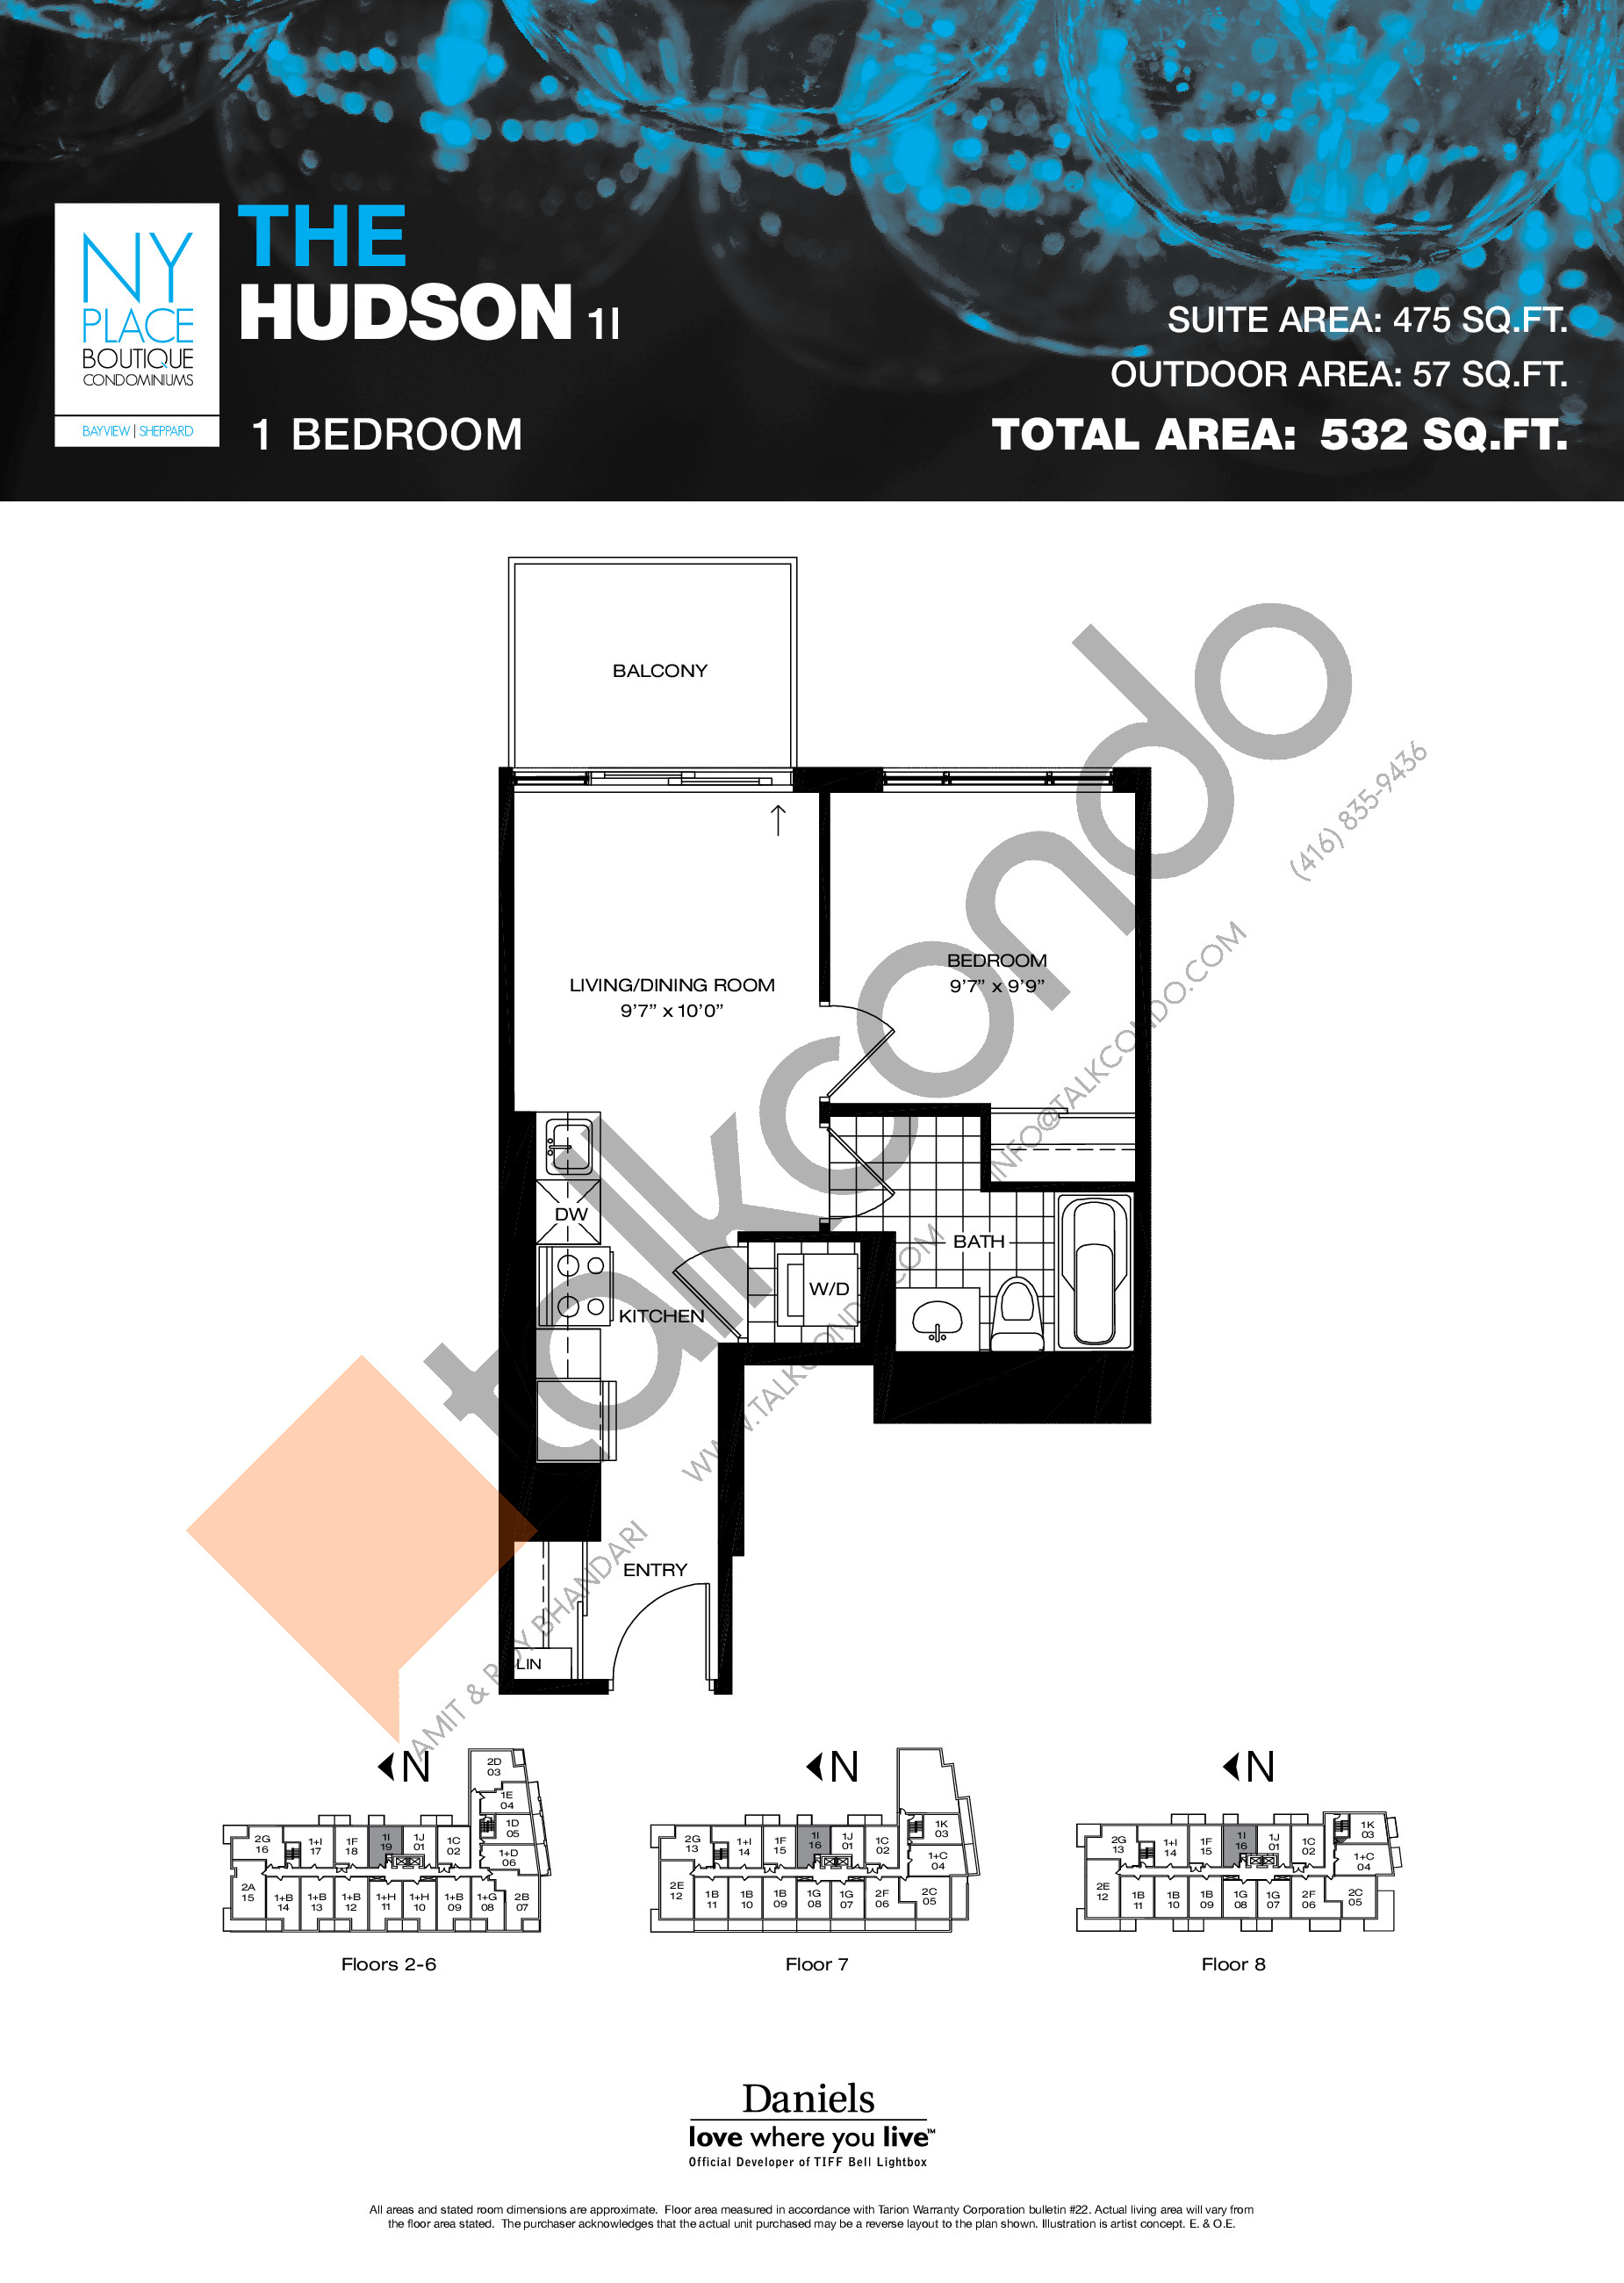 Ny Place Towers Floor Plans Prices Availability